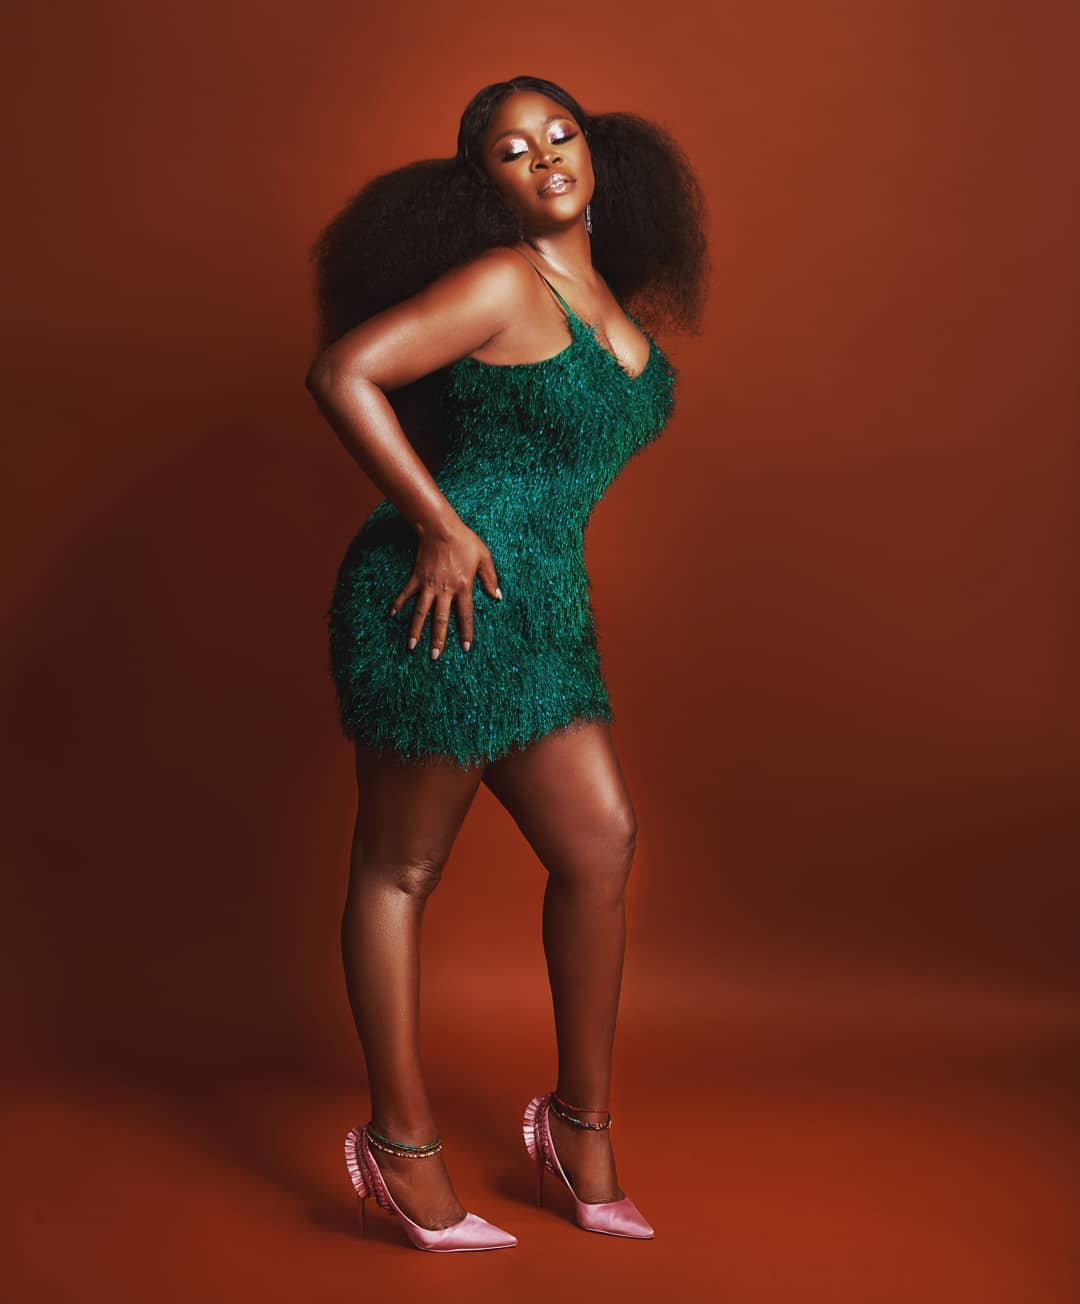 omawumi-in-her-feelings-music-style-rave